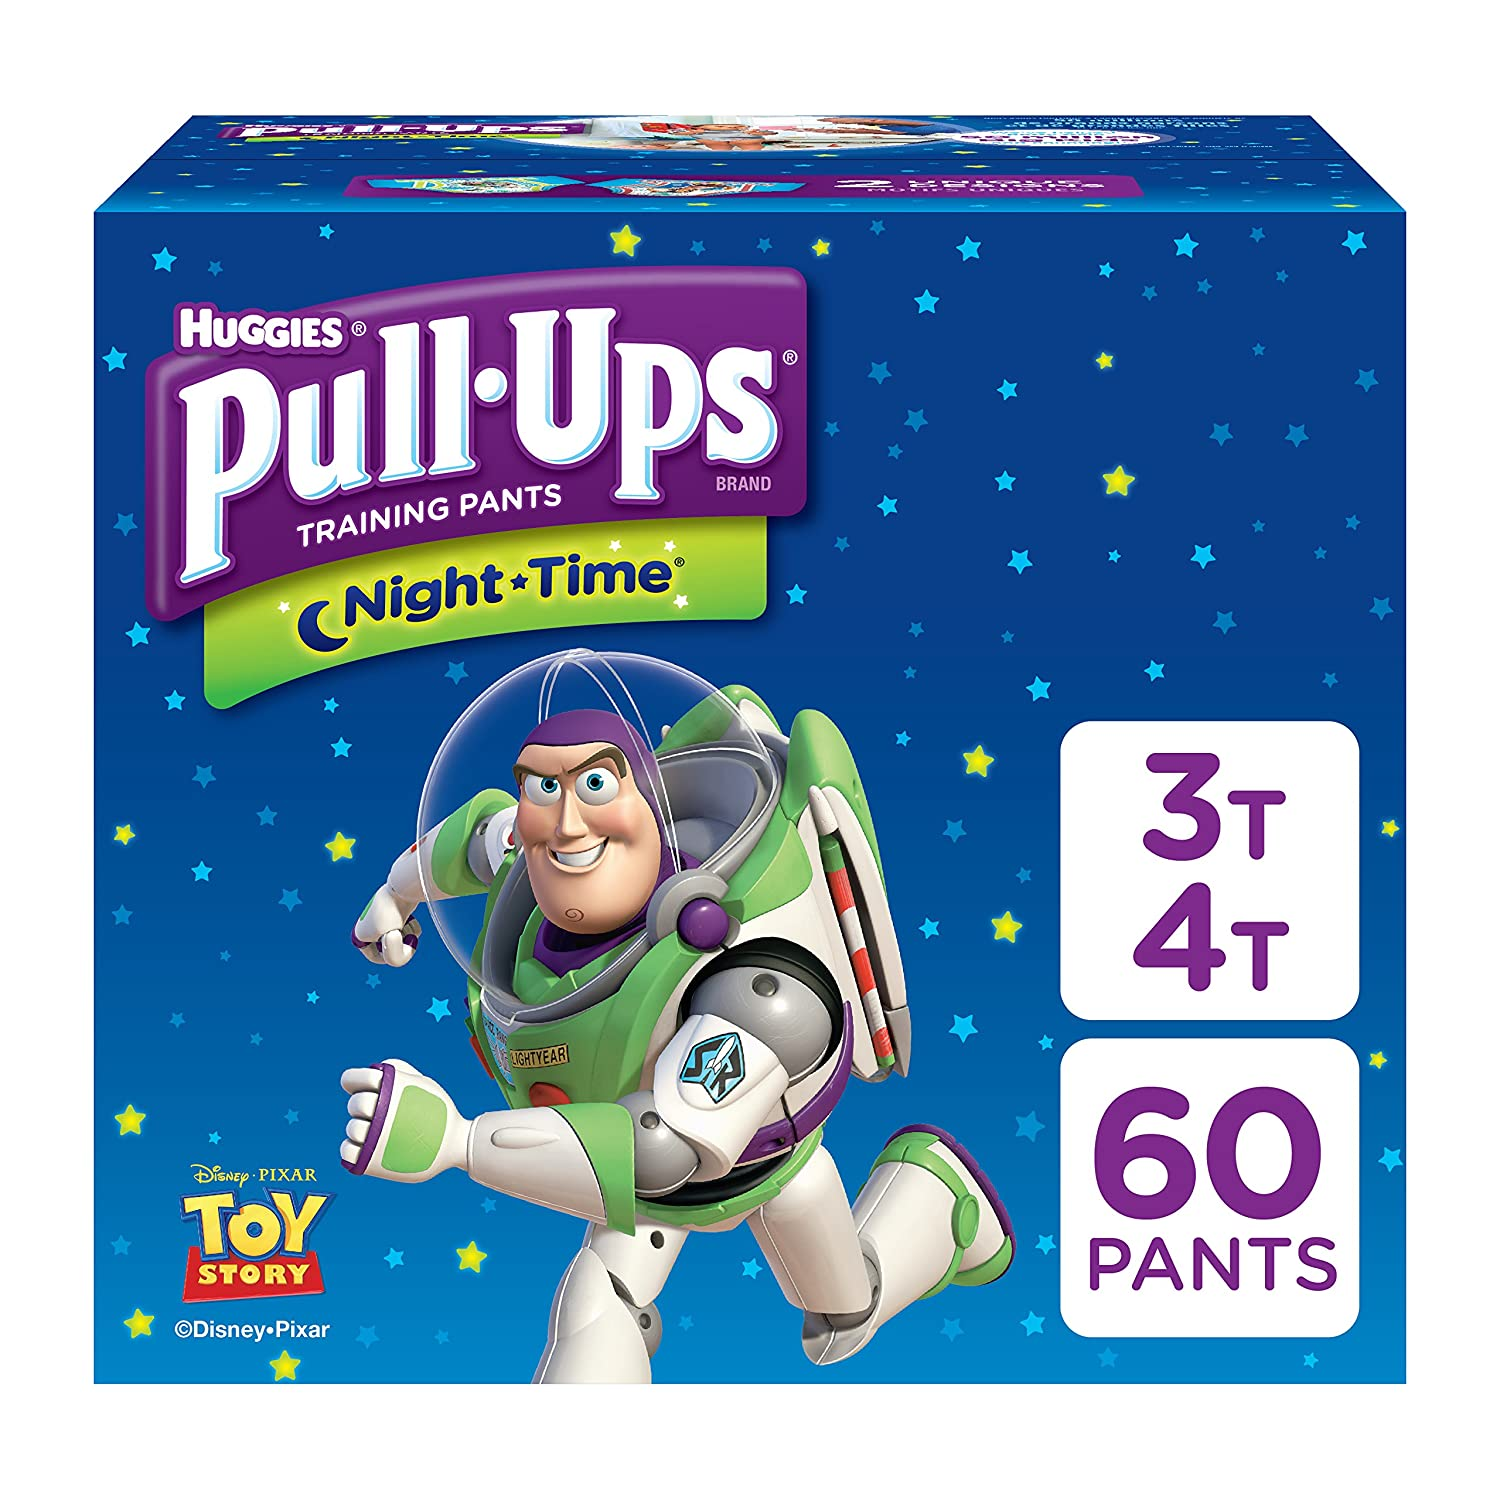 Pull-Ups Night-Time Potty Training Pants for Boys, 3T-4T (32-40 lb.), 60 Count Pull ups